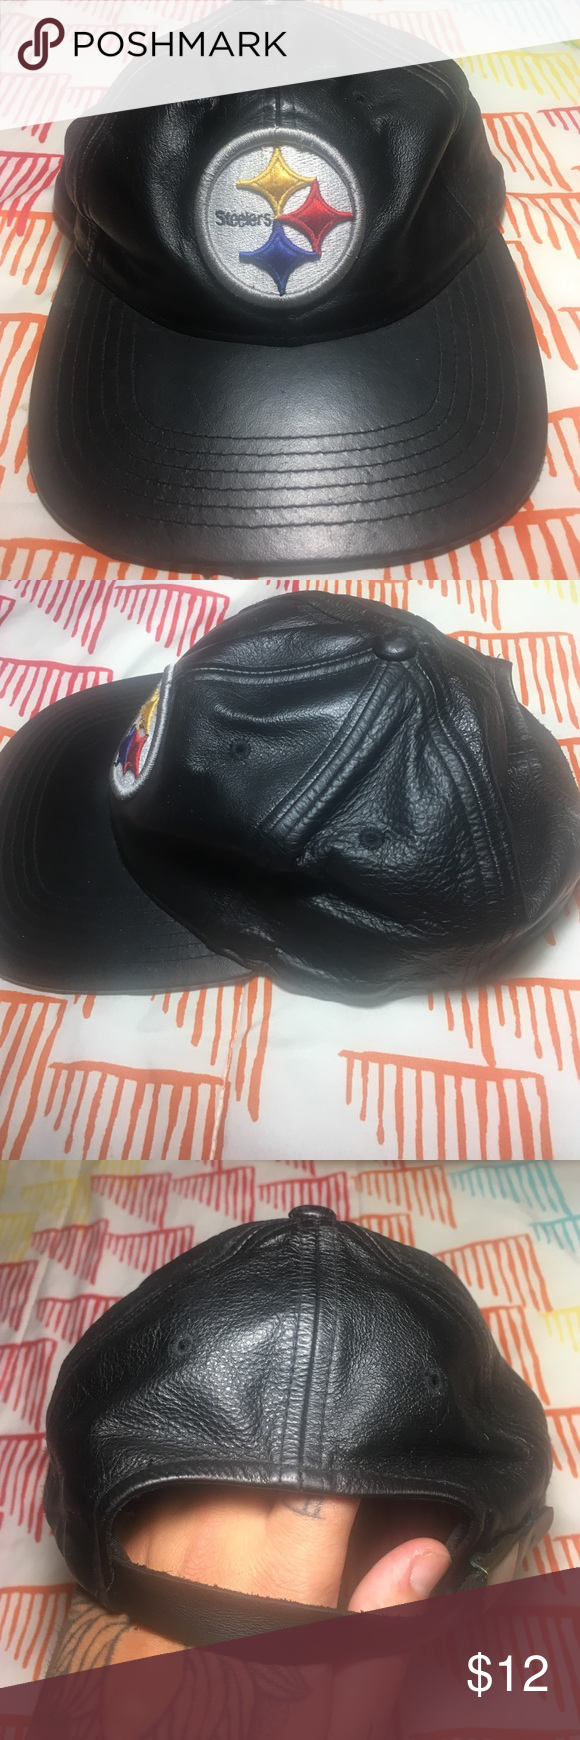 211e28e64 Pittsburgh Steelers Football Leather StrapBack Hat Size One Size -  Condition 8 10 NFL Accessories Hats